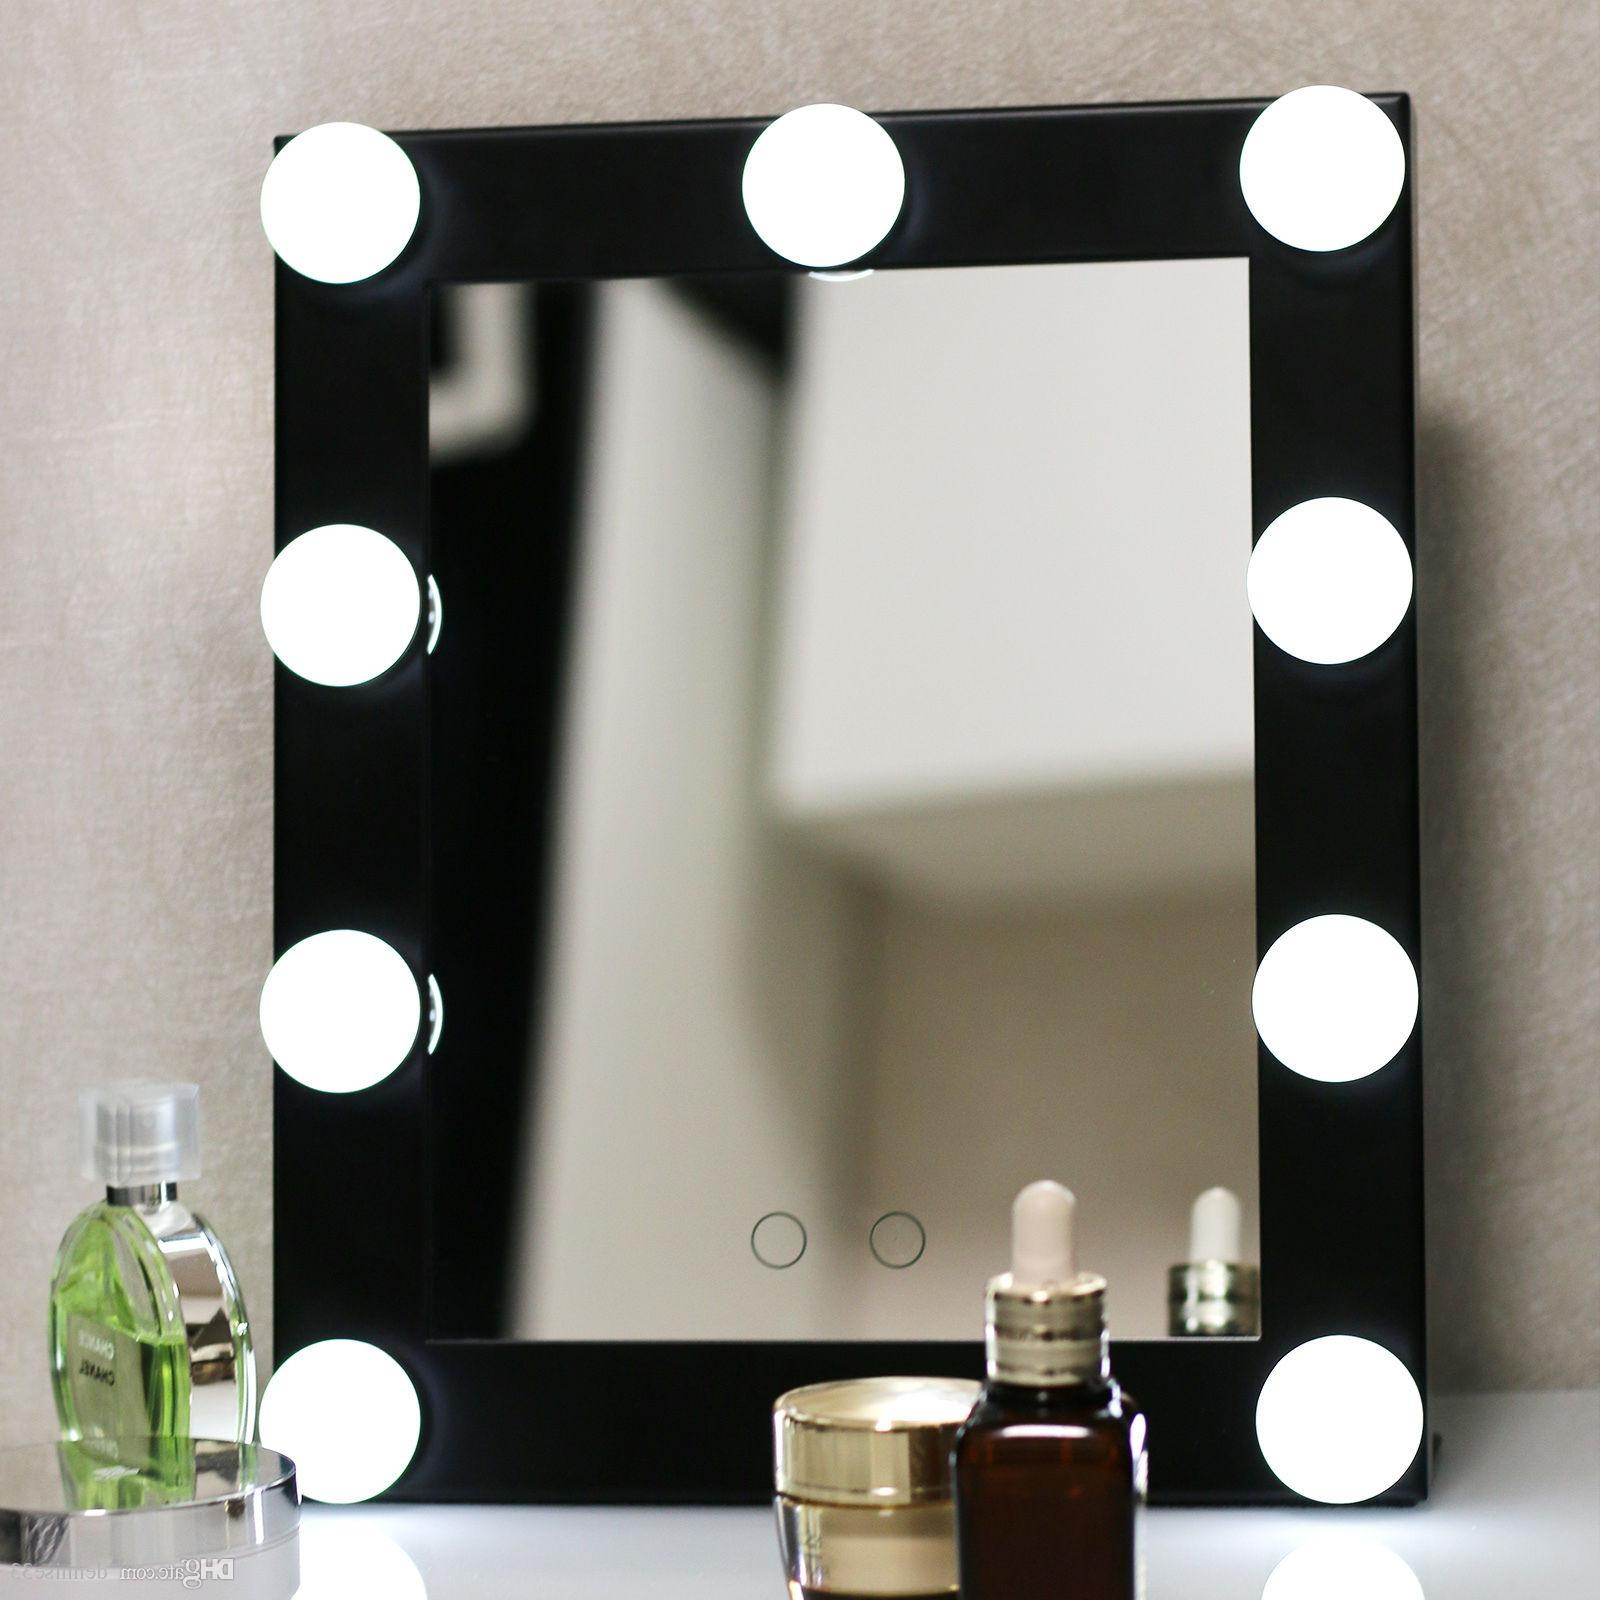 Fashionable Wall Mirrors With Light Bulbs Regarding Free Shipping Hollywood Lighted Aluminum Table Desktop Wall Mounted Cosmetic Makeup Artist Salon Vanity Girl Mirror With Lights Bulbs Around (View 11 of 20)